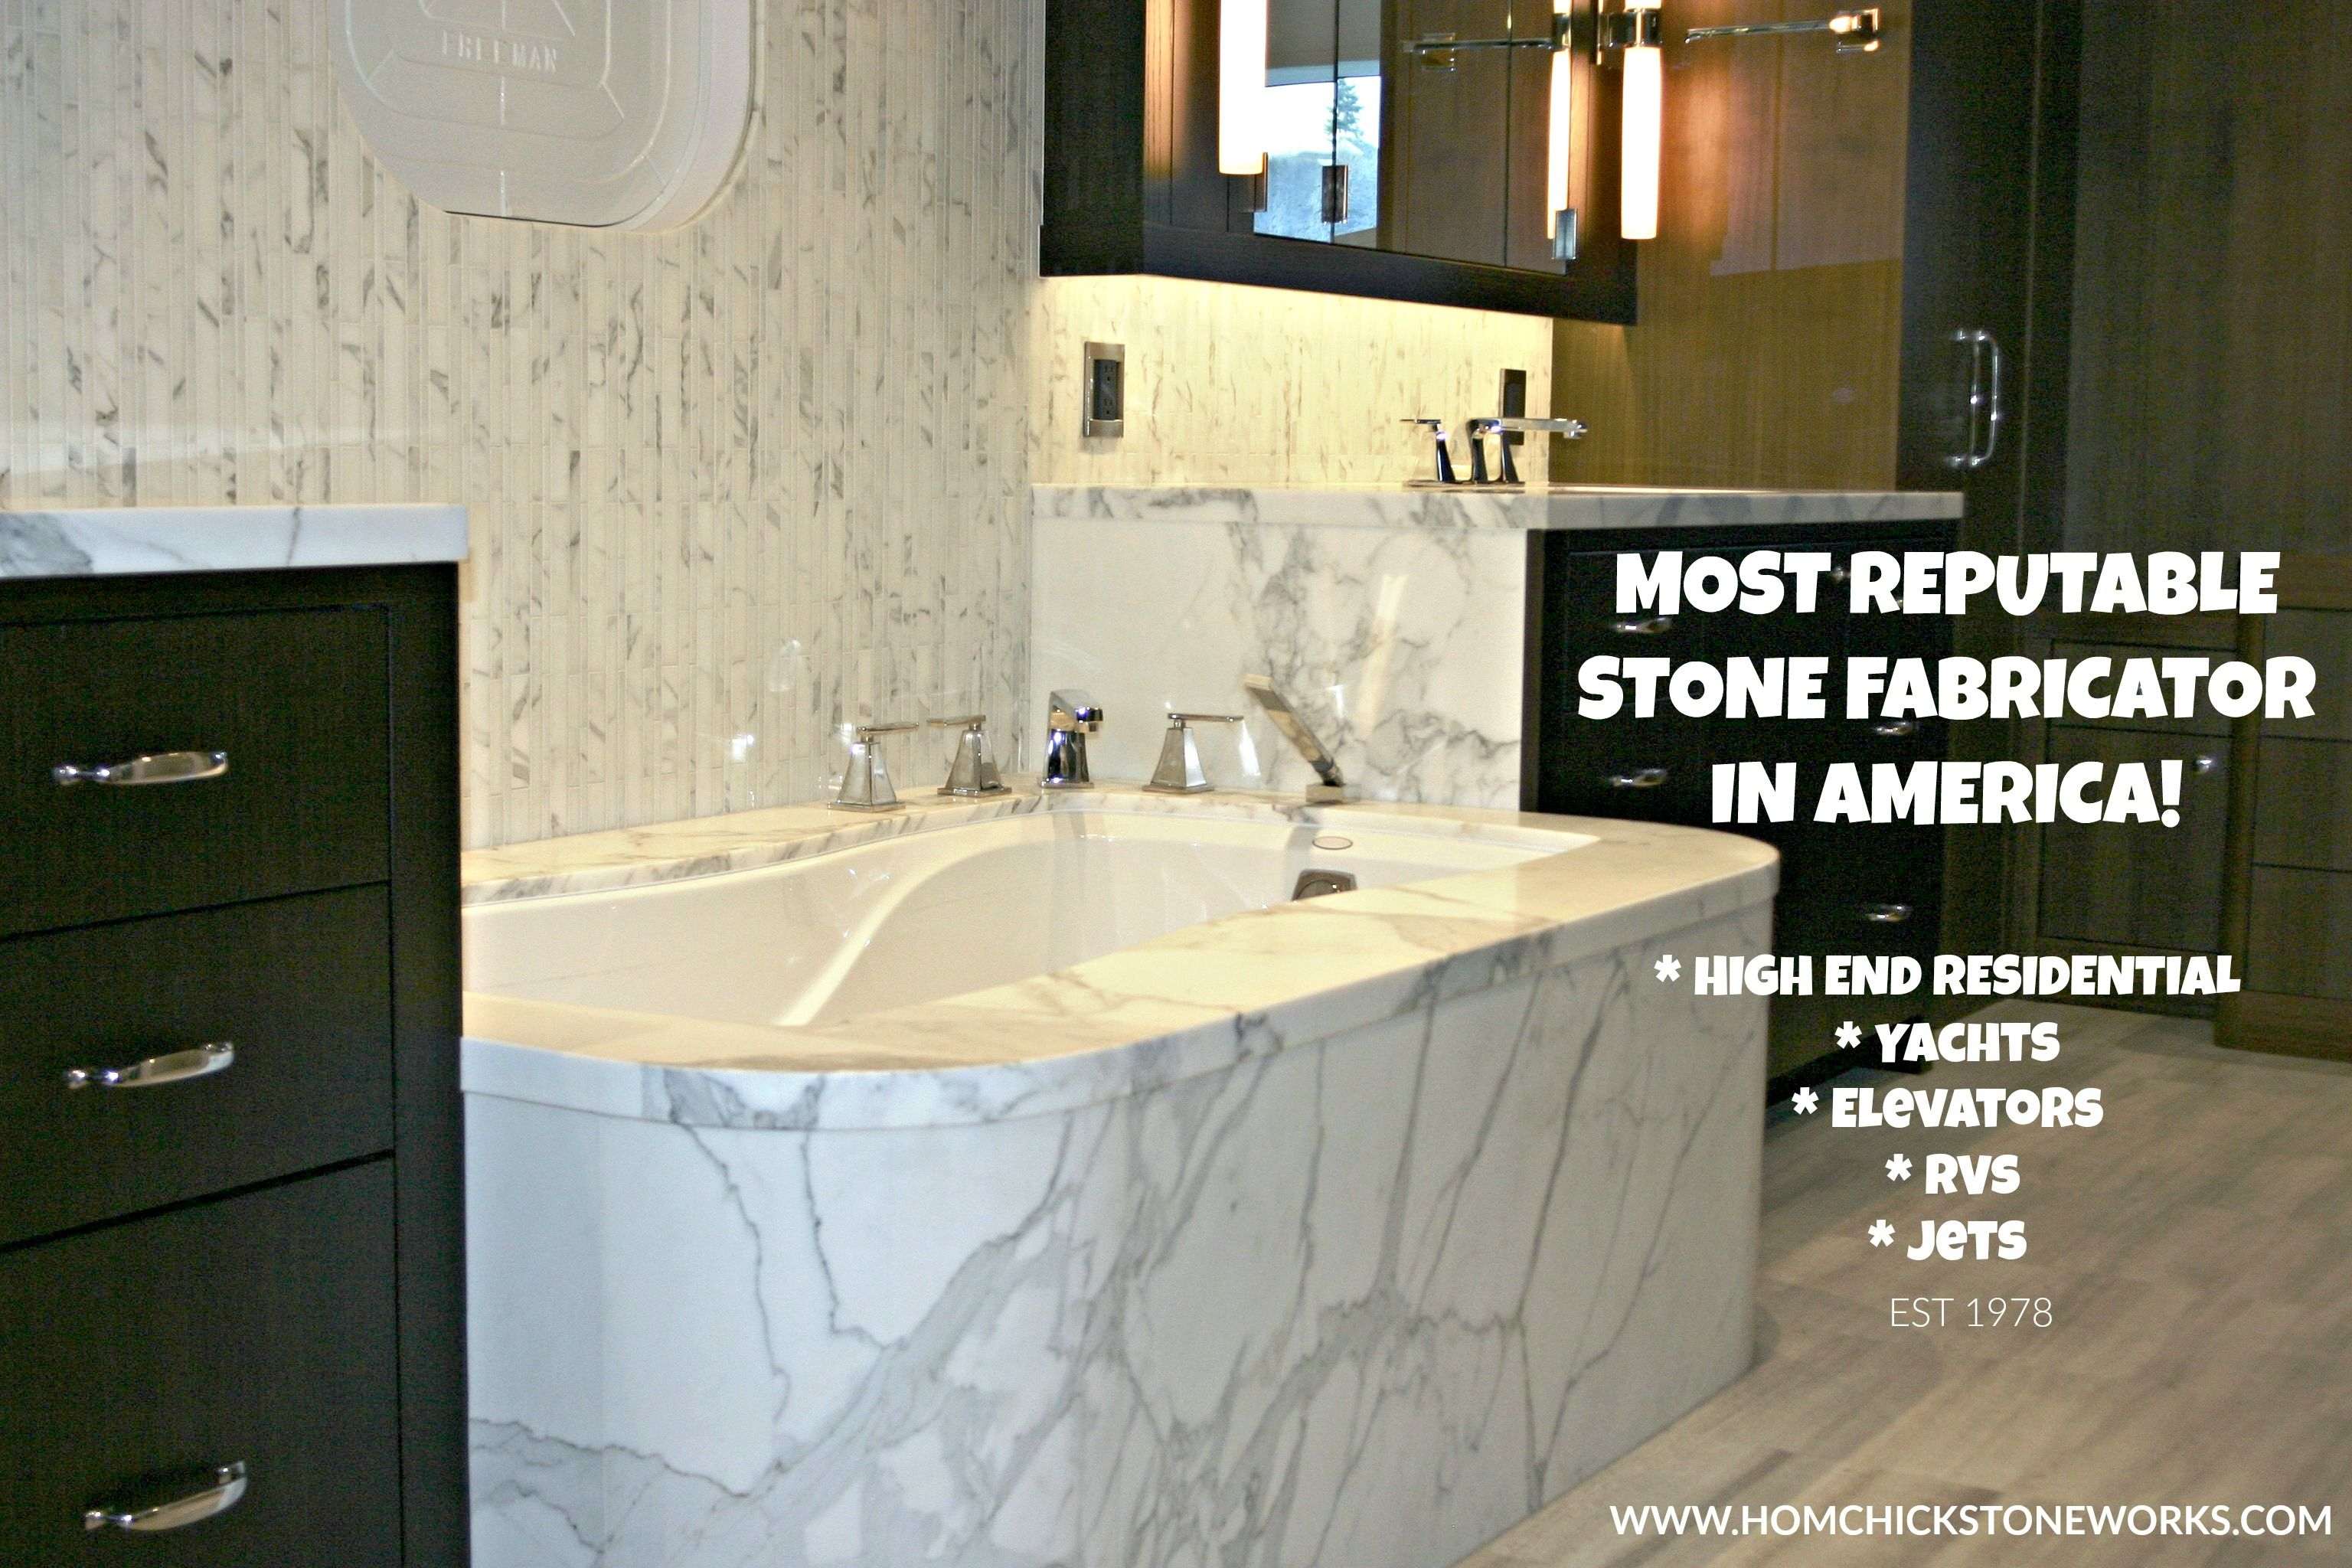 Stone Fabricator In Seattle Washington That Specializes In Lightweight 1cm Stonework On Yachts Rv S Jets Elevators E Marble Slab Travertine Installation